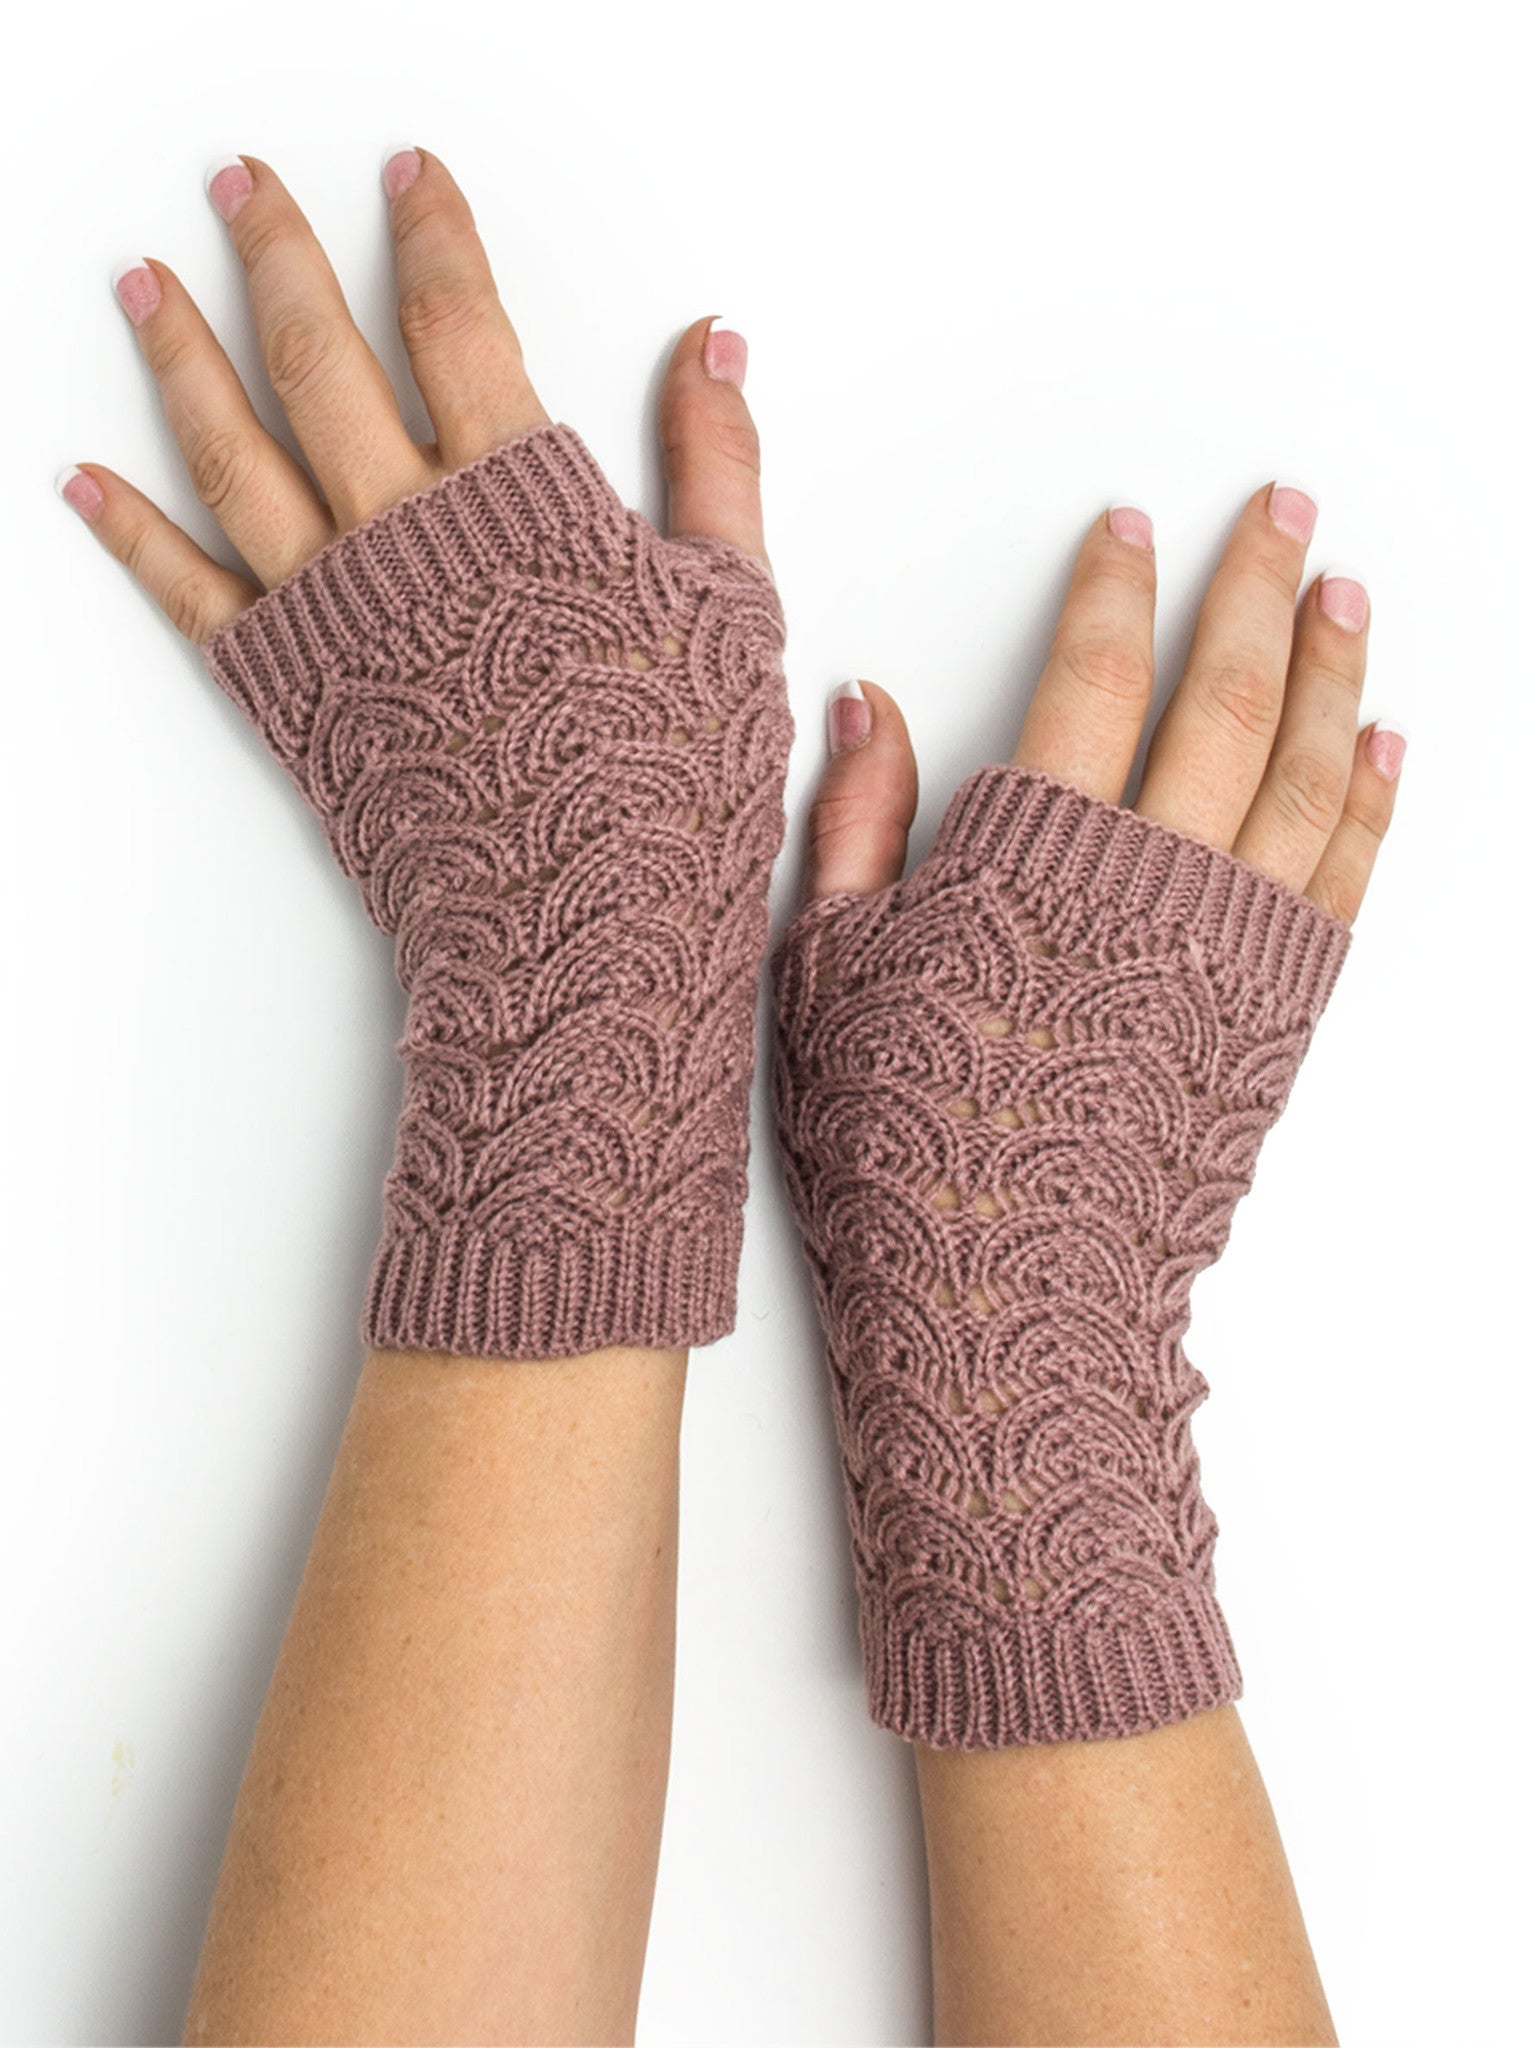 Armwarmers - Maeve Scallop Open Lace Crochet Pattern Fingerless Gloves / Armwarmers -(Mauve) Bohomonde  - 1